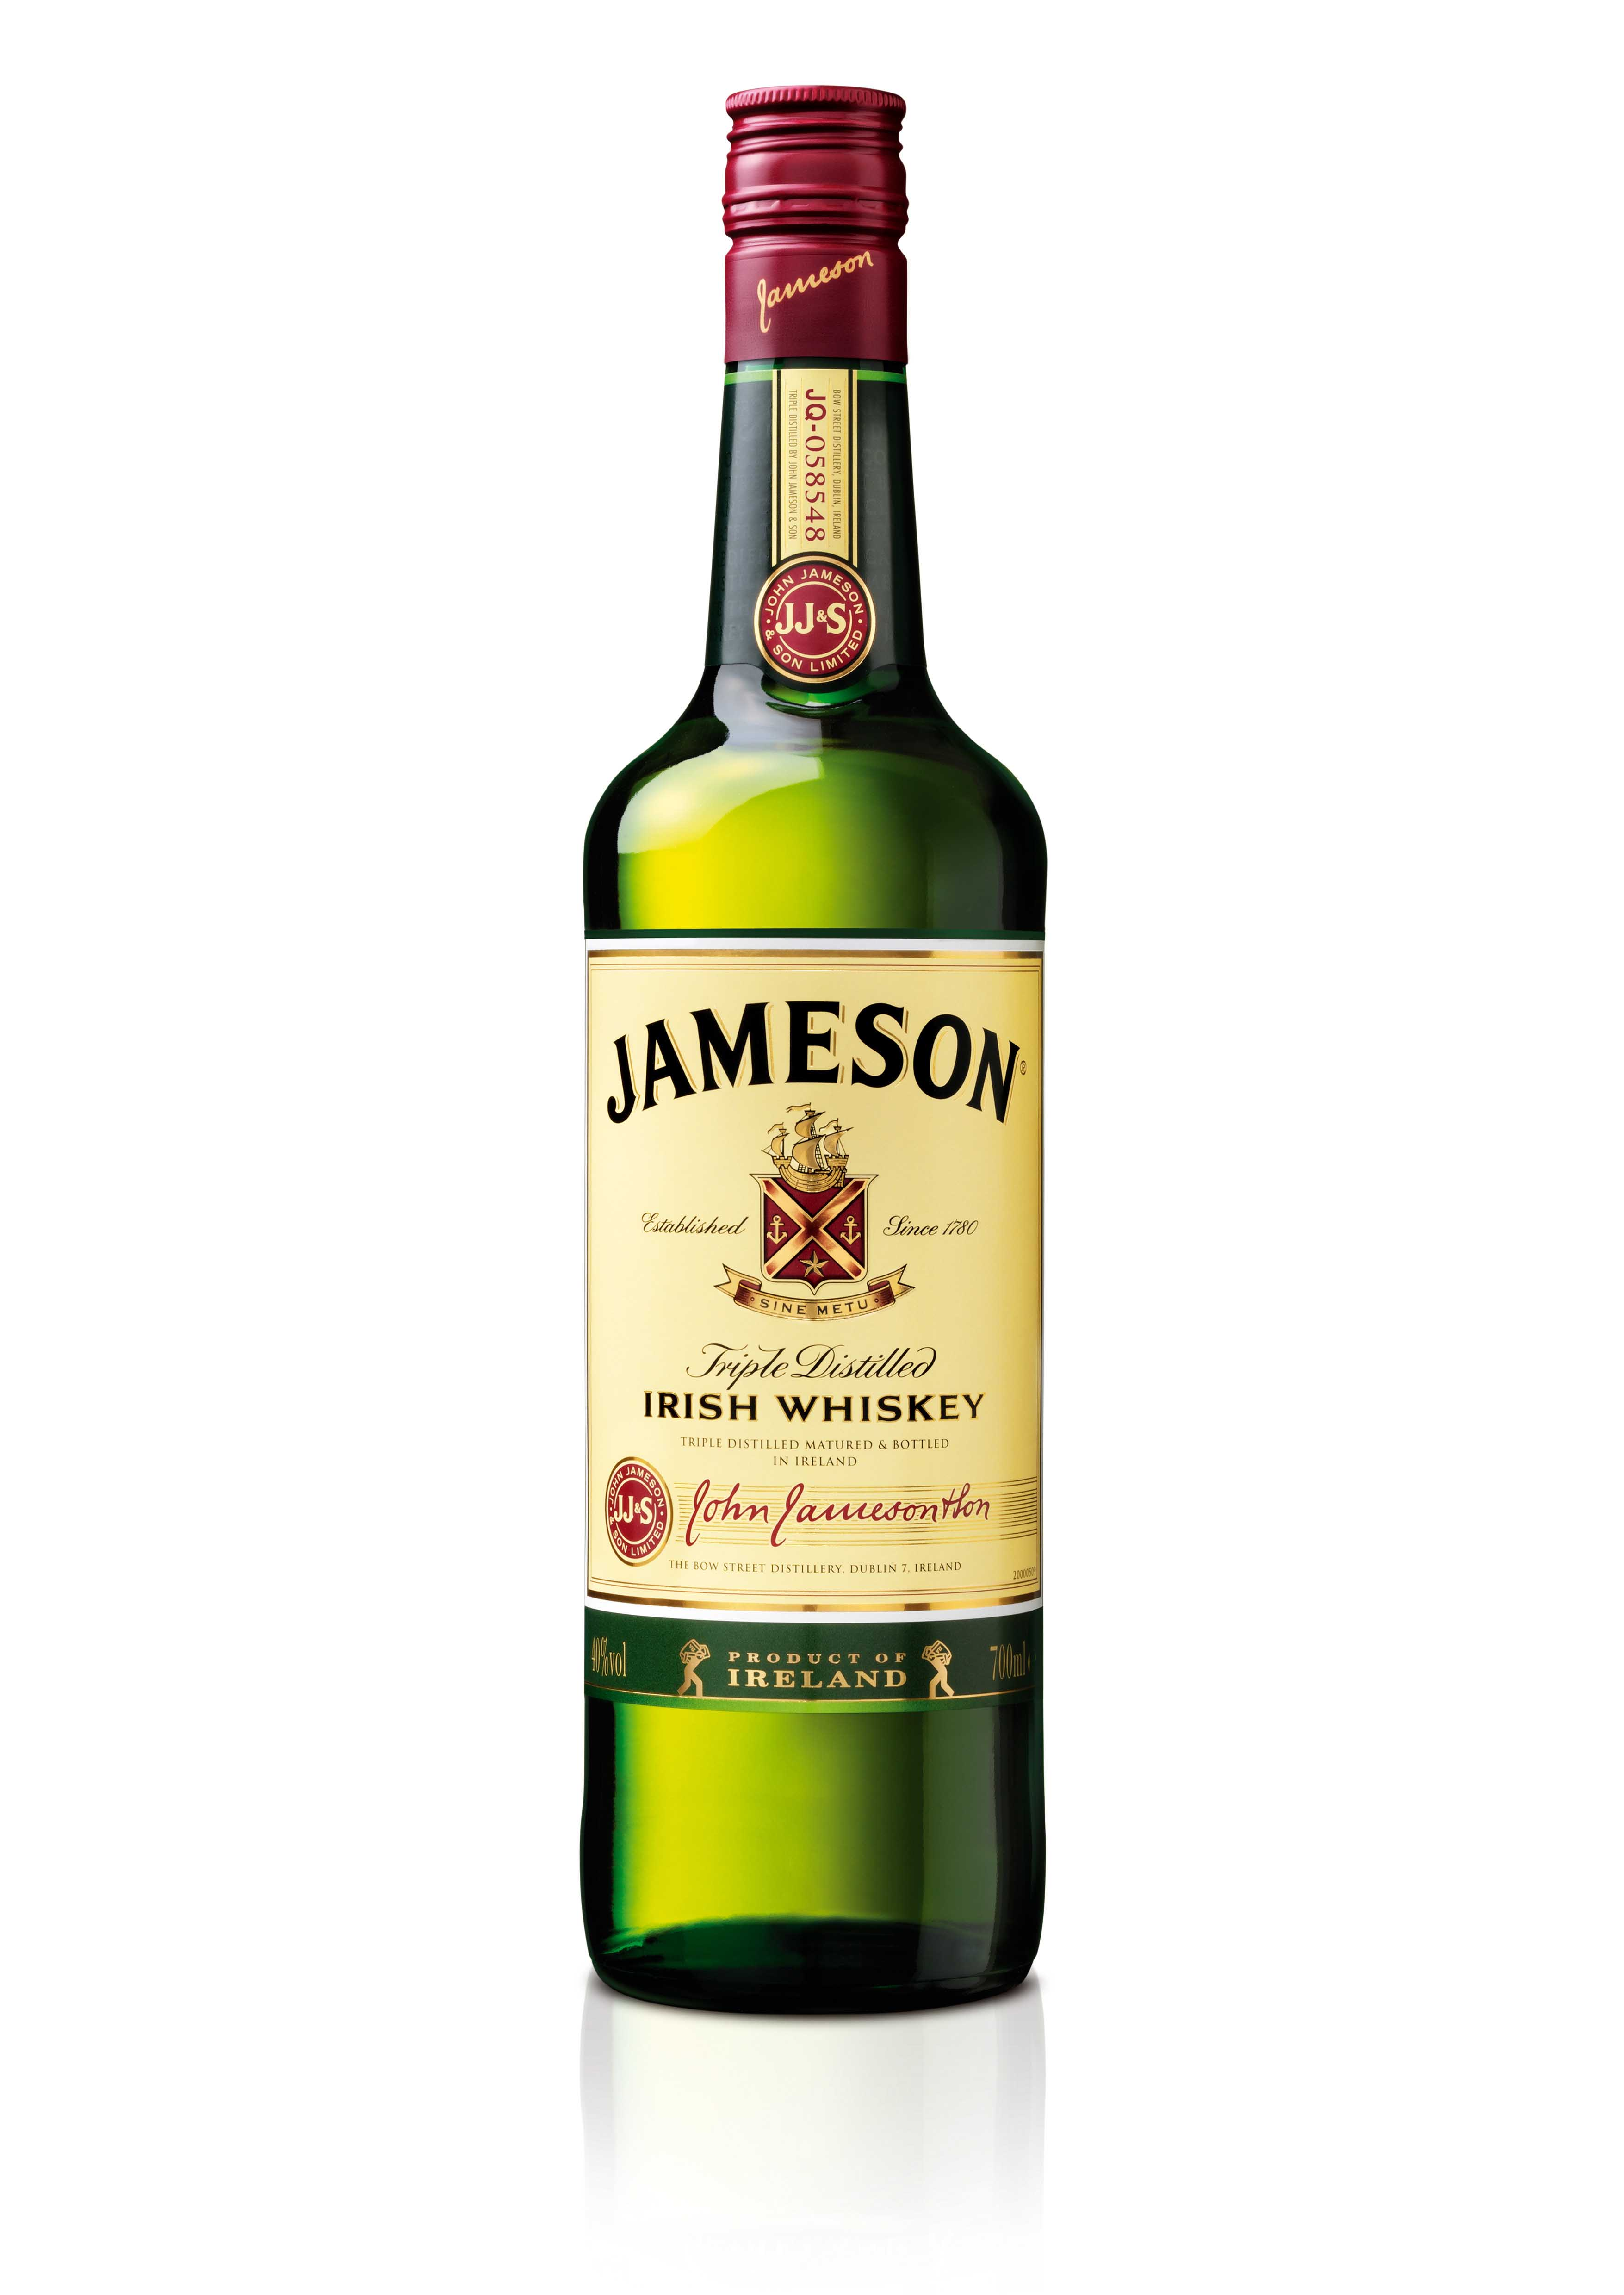 Jameson Bottle Shot - Hi ResJameson Irish Whiskey Bottle